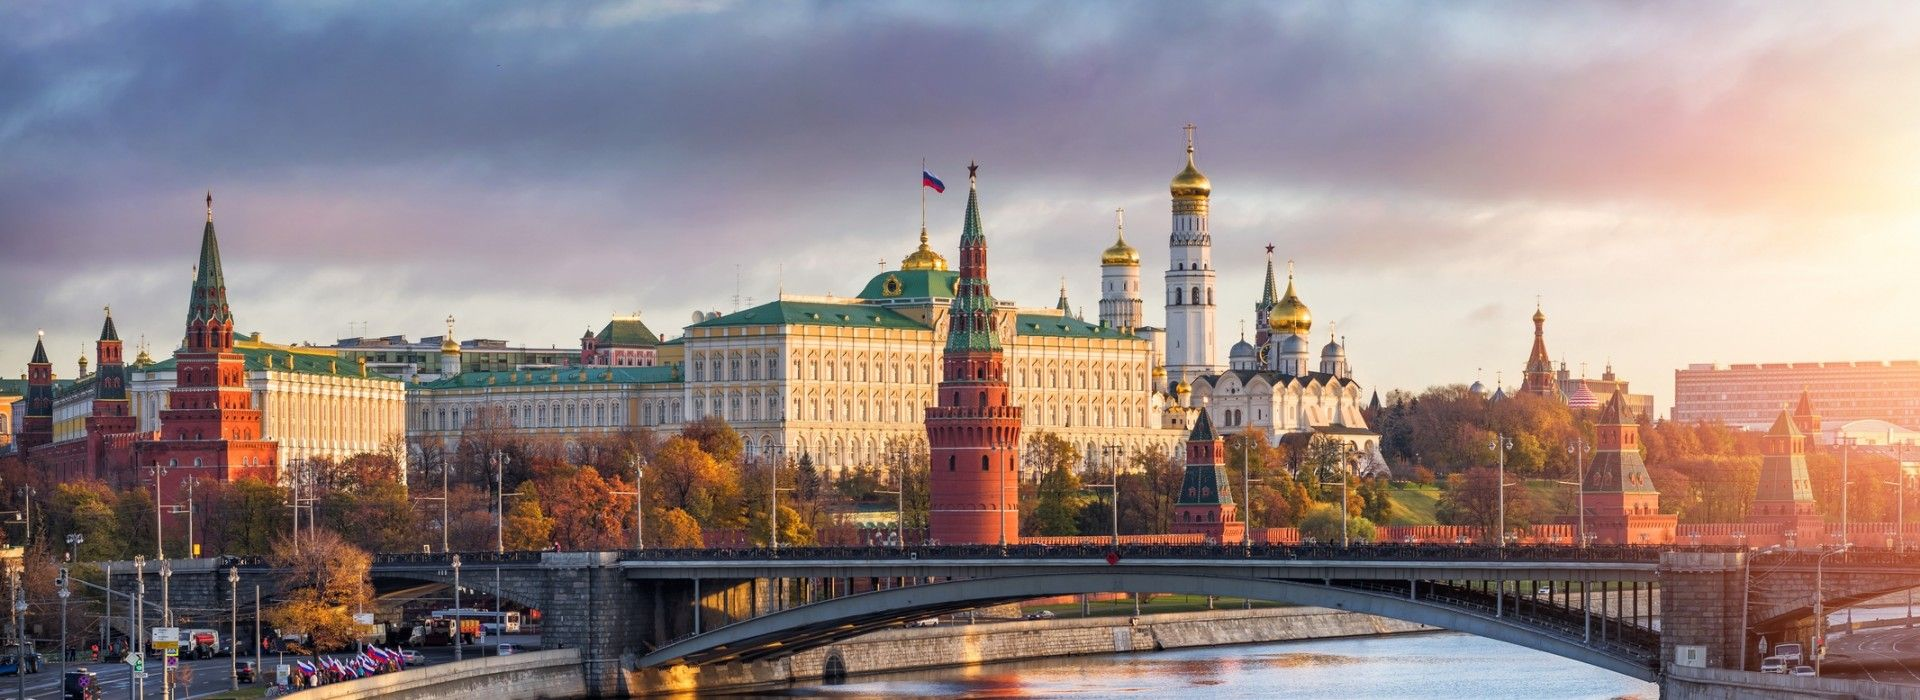 Sightseeing, attractions, culture and history Tours in Yekaterinburg